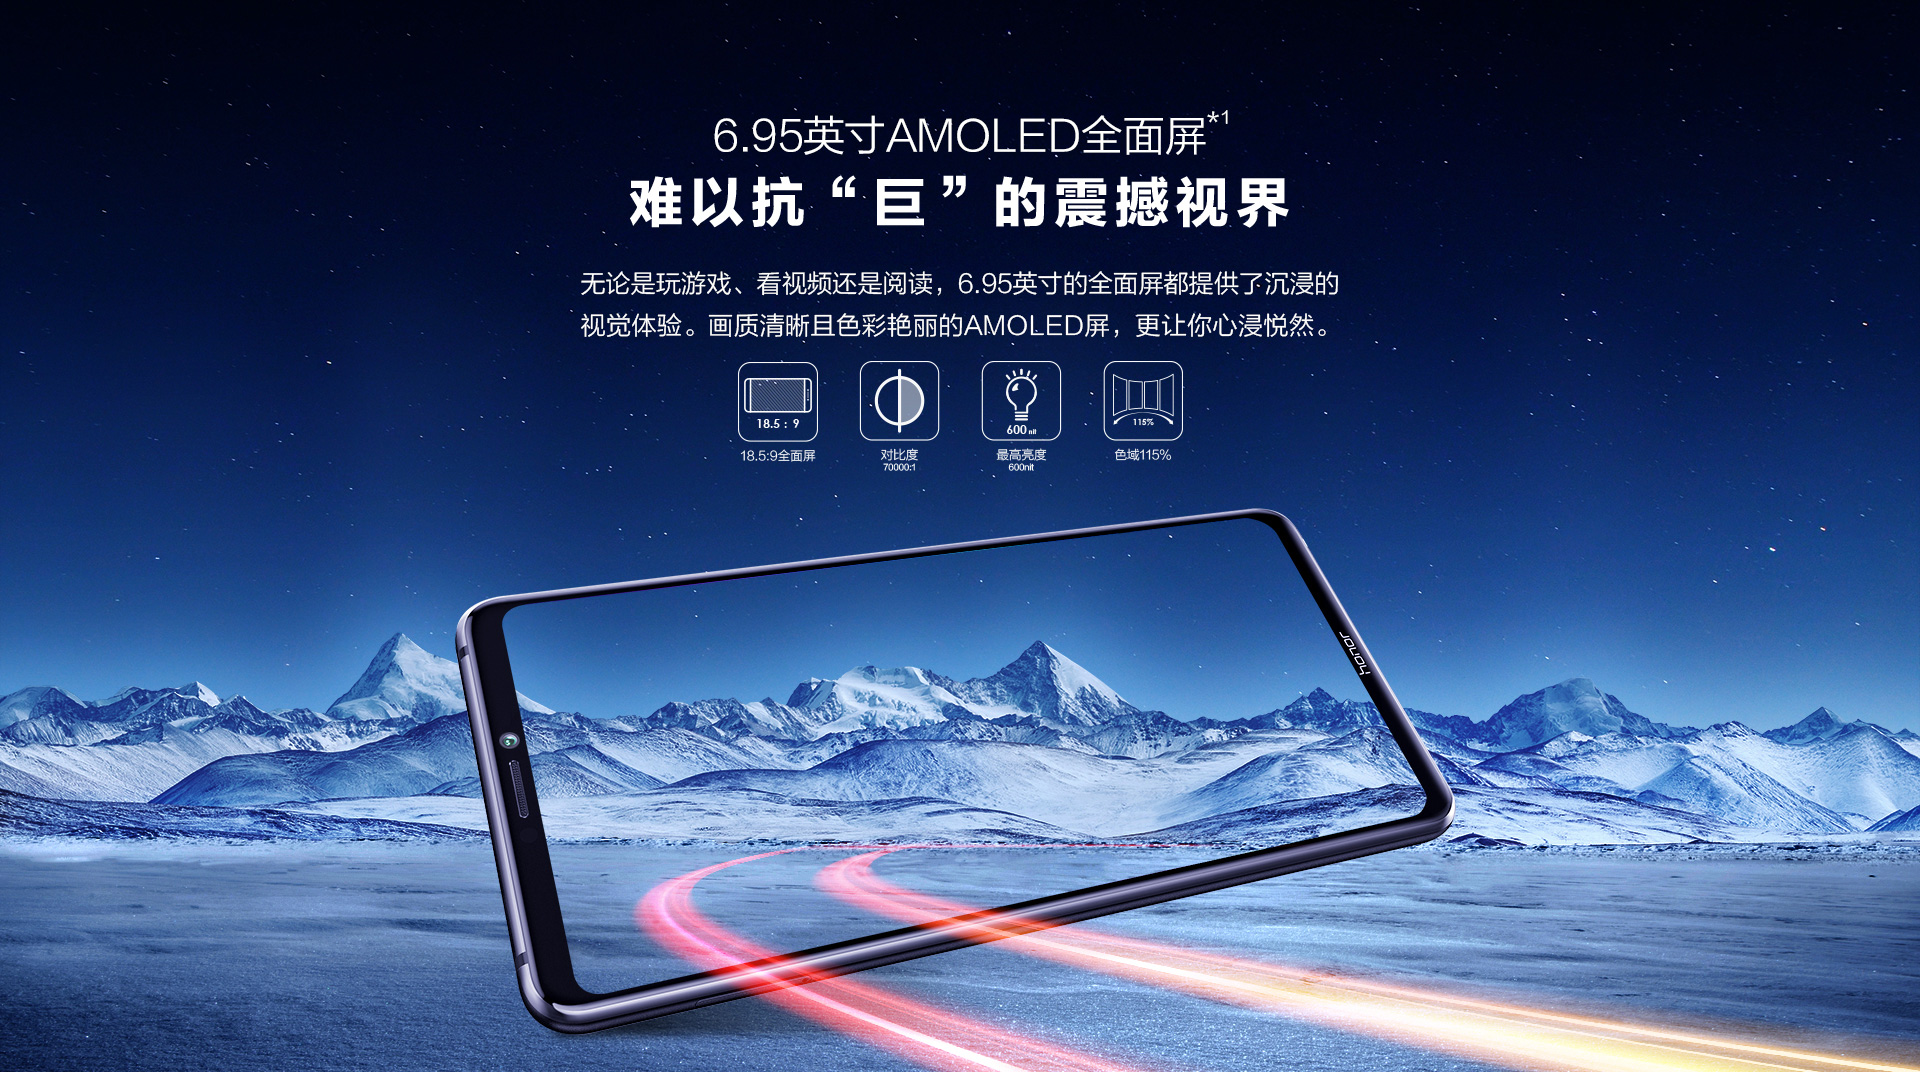 Honor Note10 unveiled with 6 95